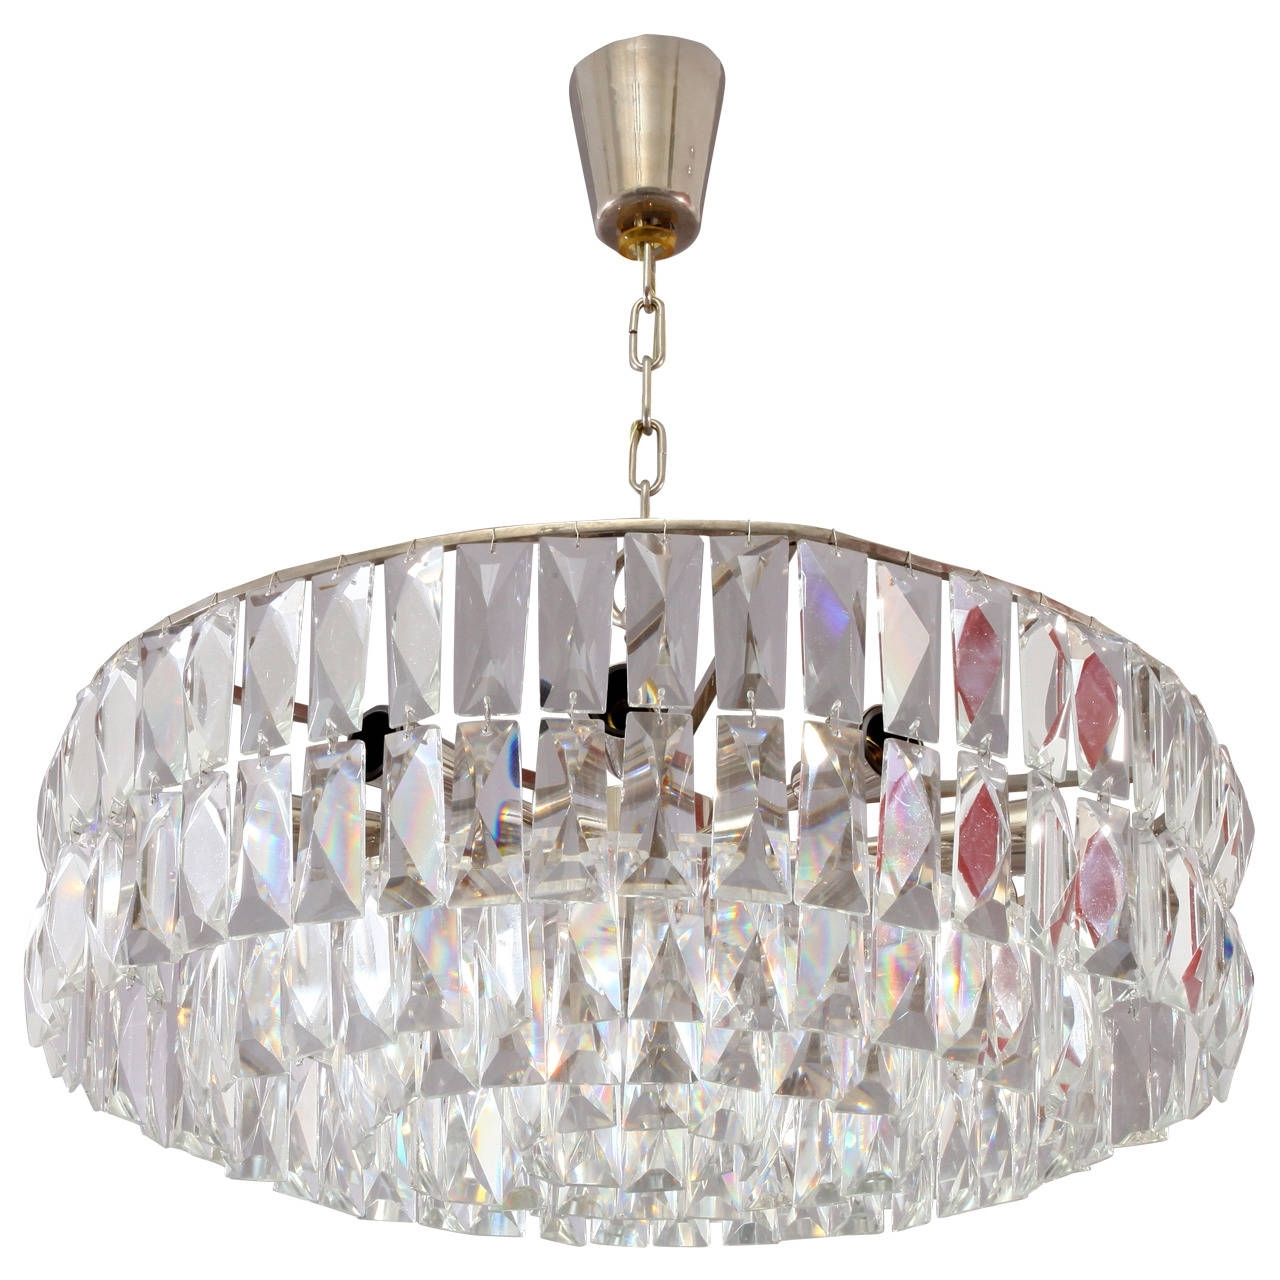 Newest Stunning Chandelier With Large Crystalsbakalowits And Sohne Throughout Vienna Crystal Chandeliers (View 8 of 20)